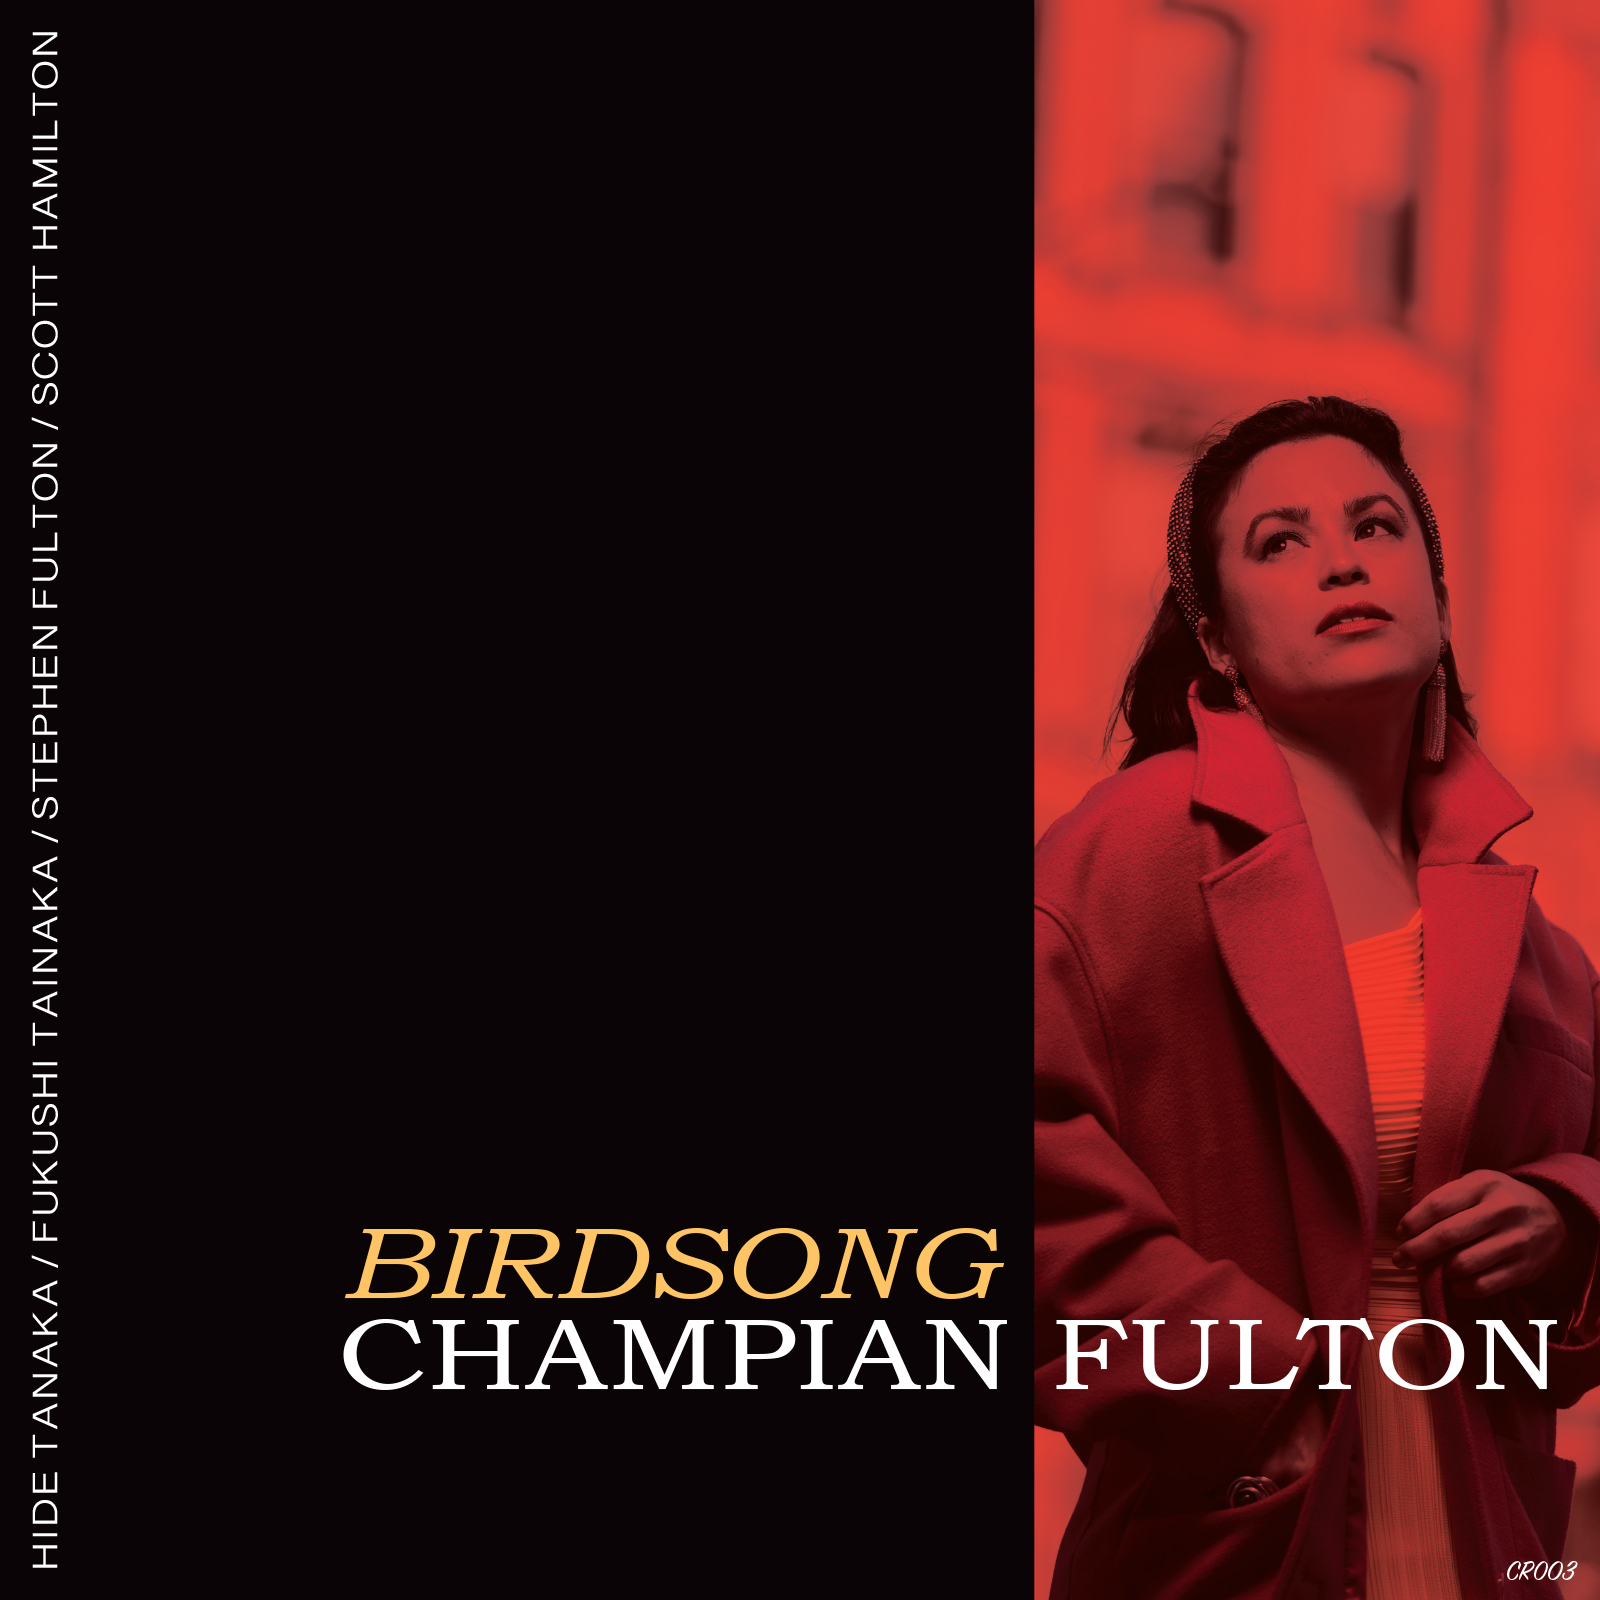 REVIEW: Champian Fulton: Birdsong album review – All About Jazz